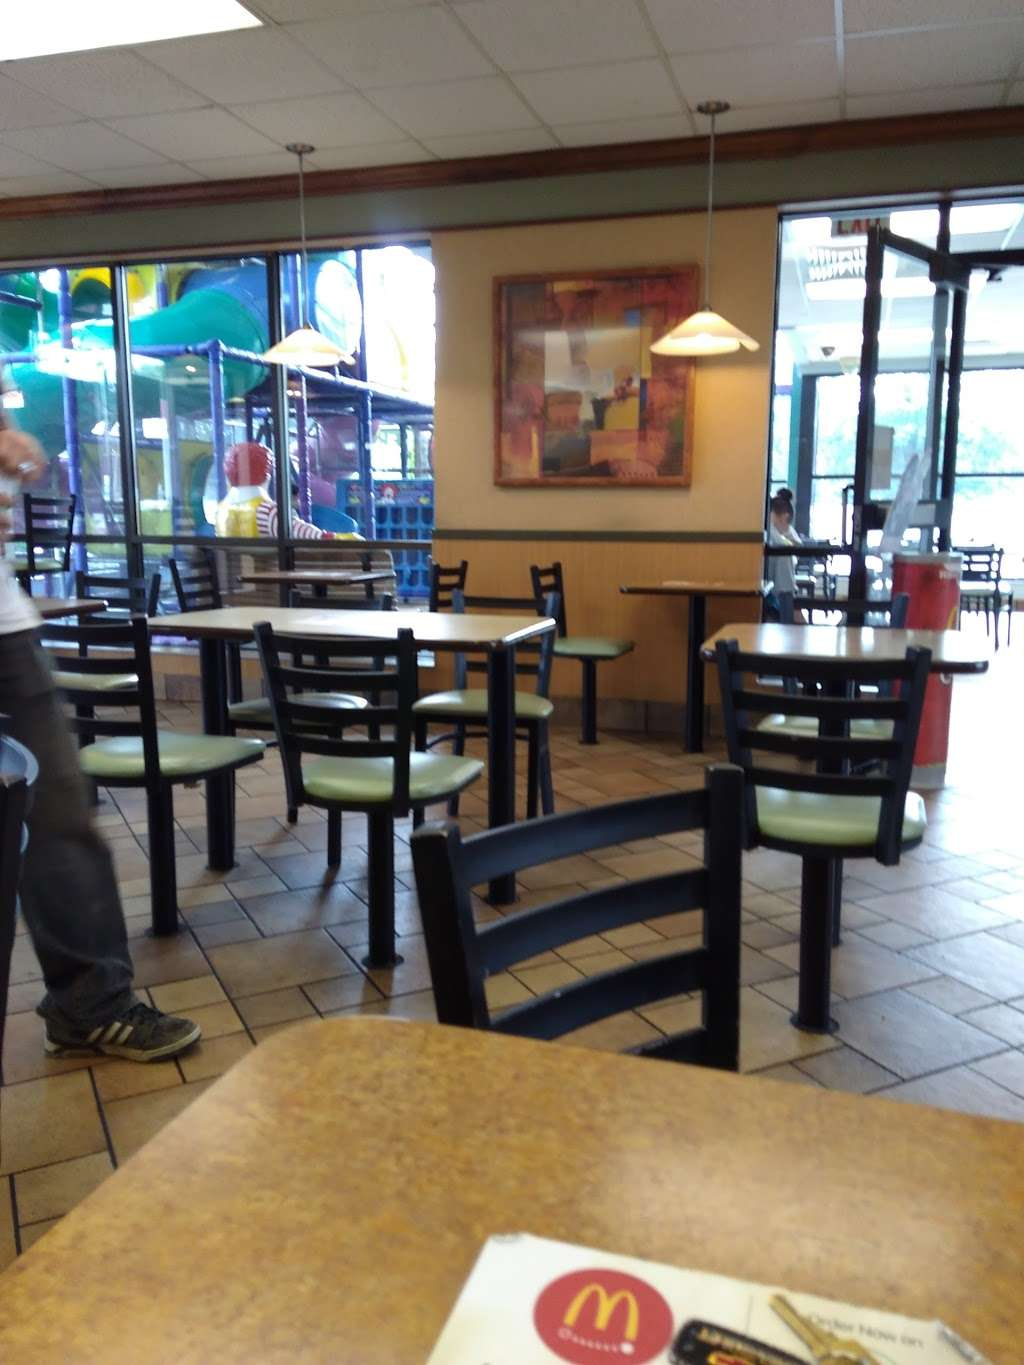 McDonalds - cafe  | Photo 4 of 10 | Address: 3021 Southeastern Ave, Indianapolis, IN 46203, USA | Phone: (317) 631-3484